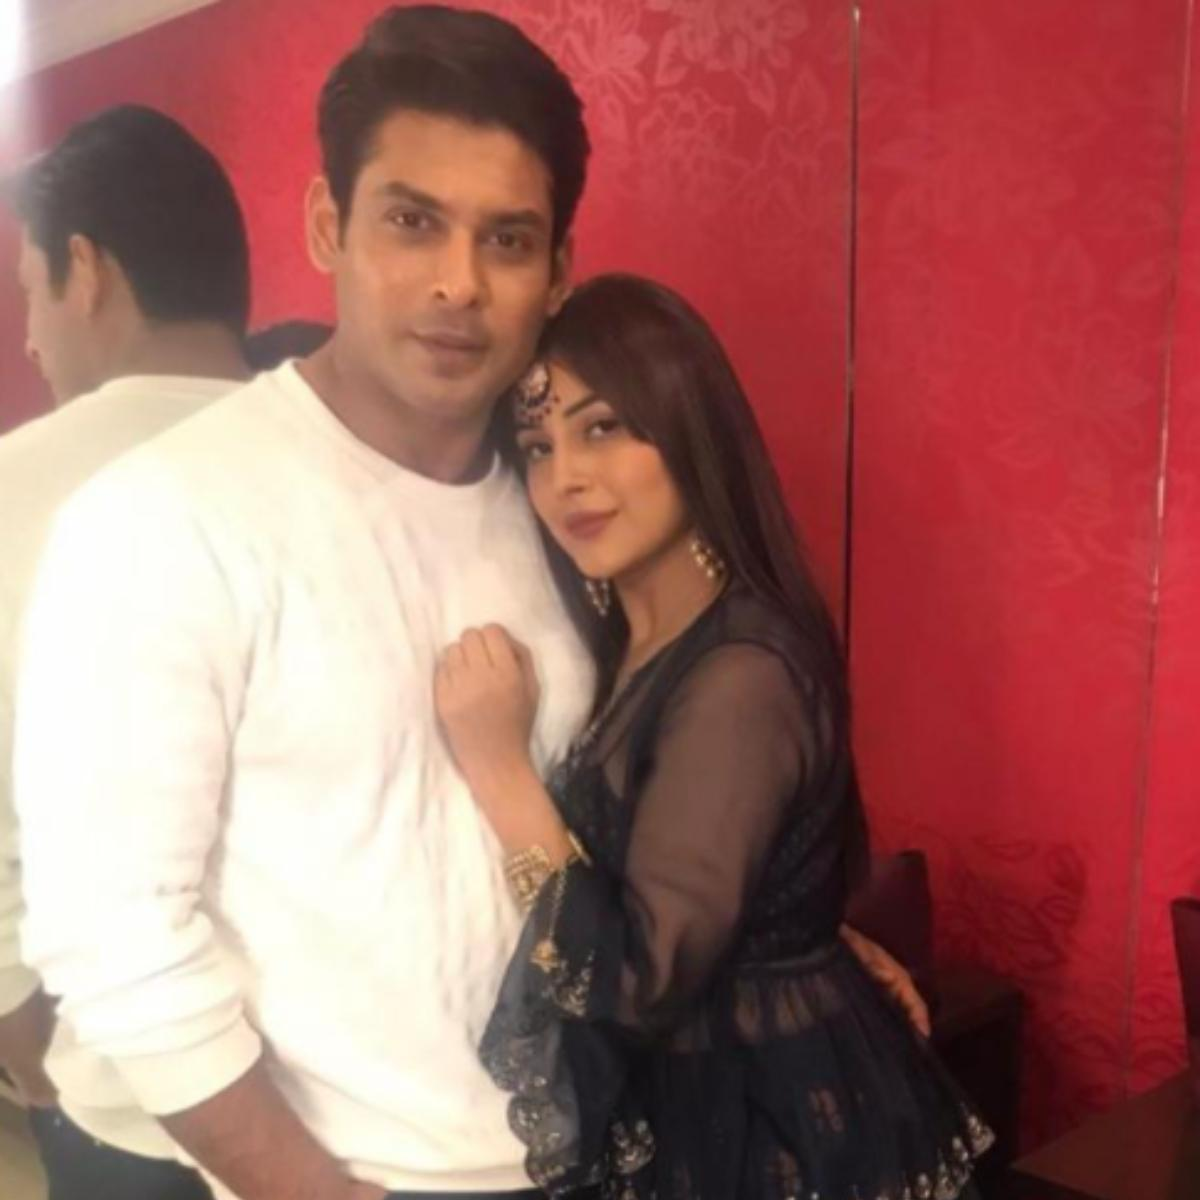 Sidharth Shukla and Shehnaaz Gill's pictures